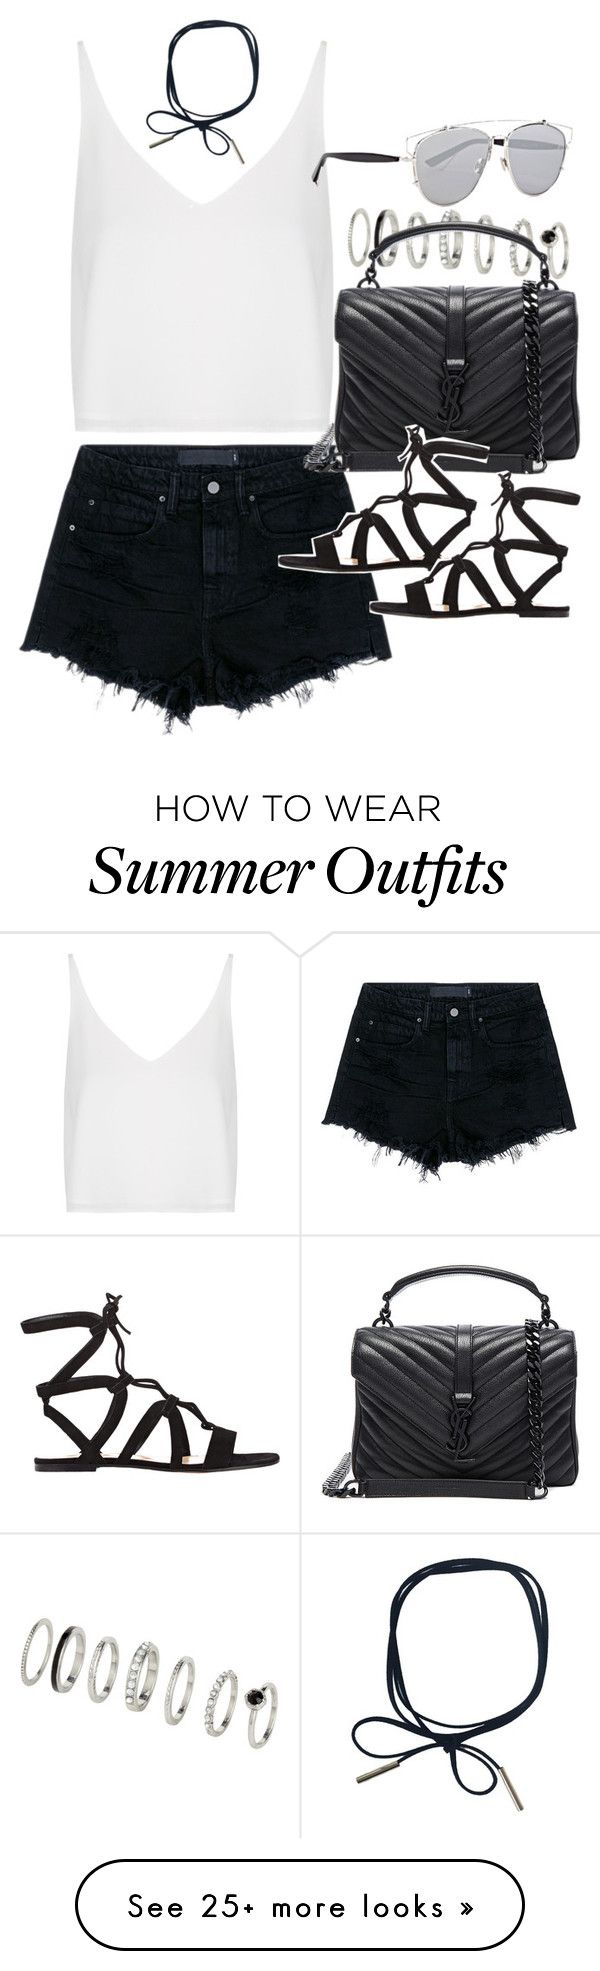 """""""Outfit for summer with black shorts"""" by ferned on Polyvore featuring ..."""